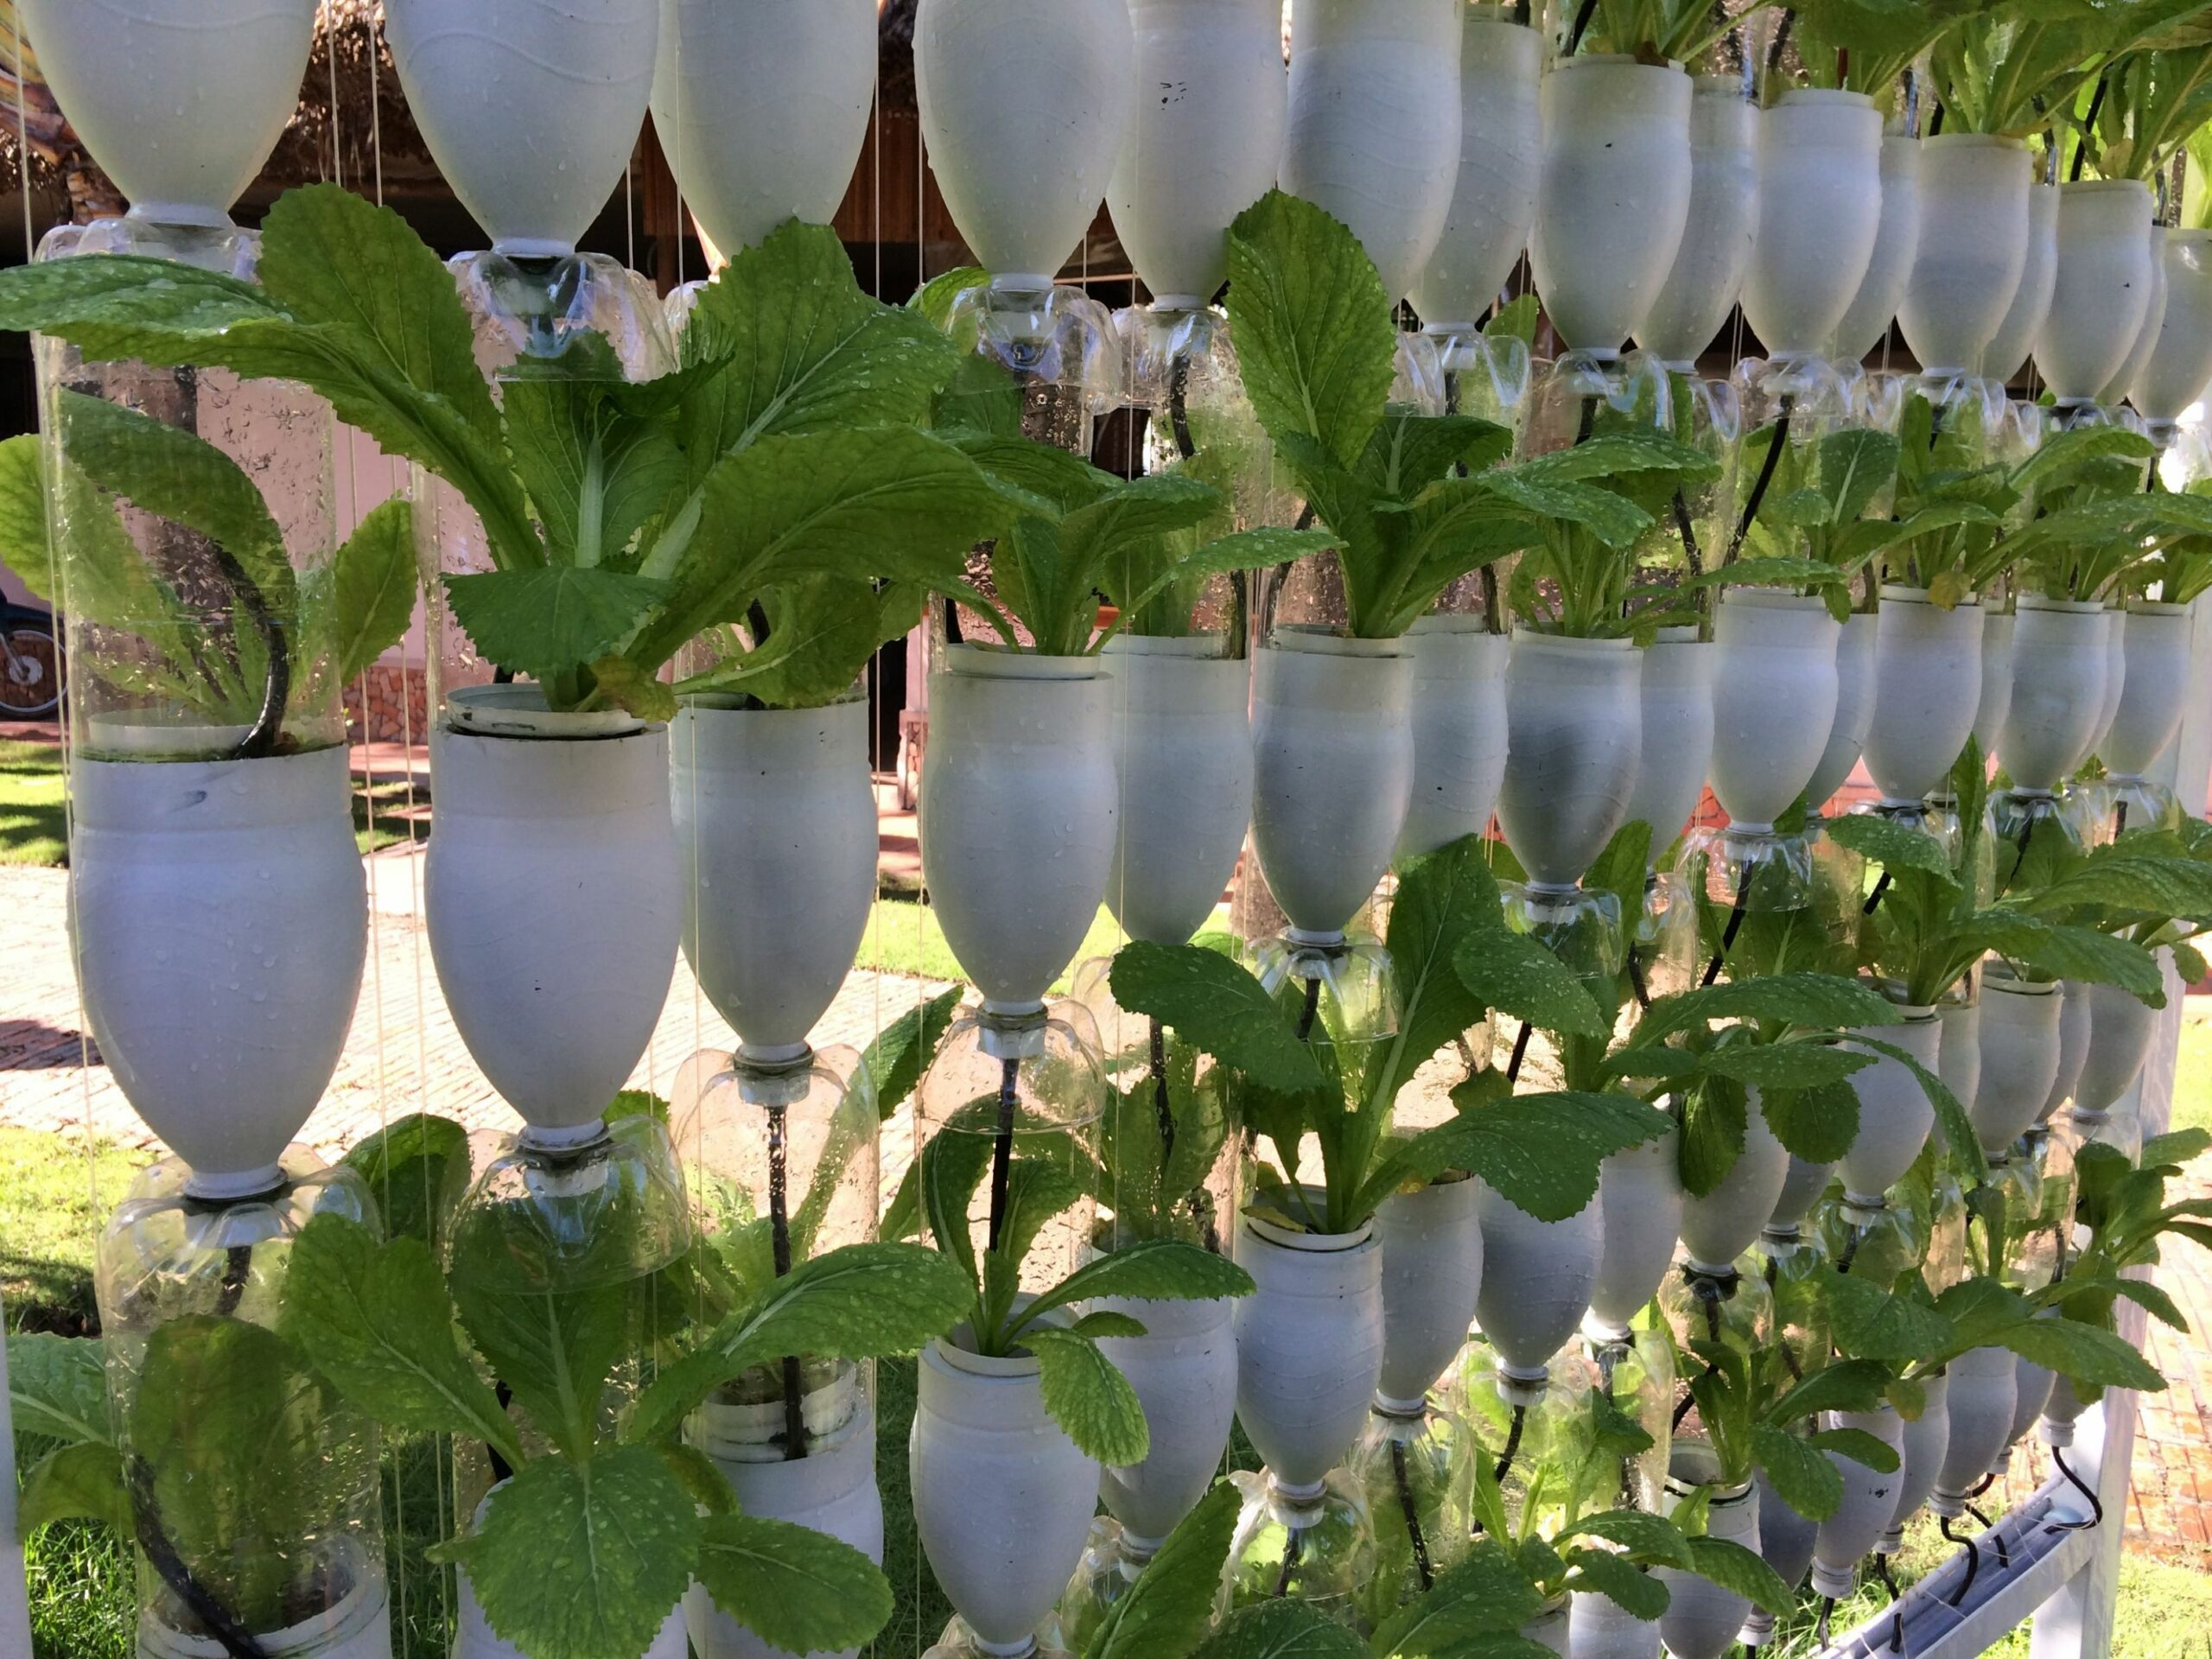 Recycled Plastic Bottles Gardening Ideas | Recycled garden ..